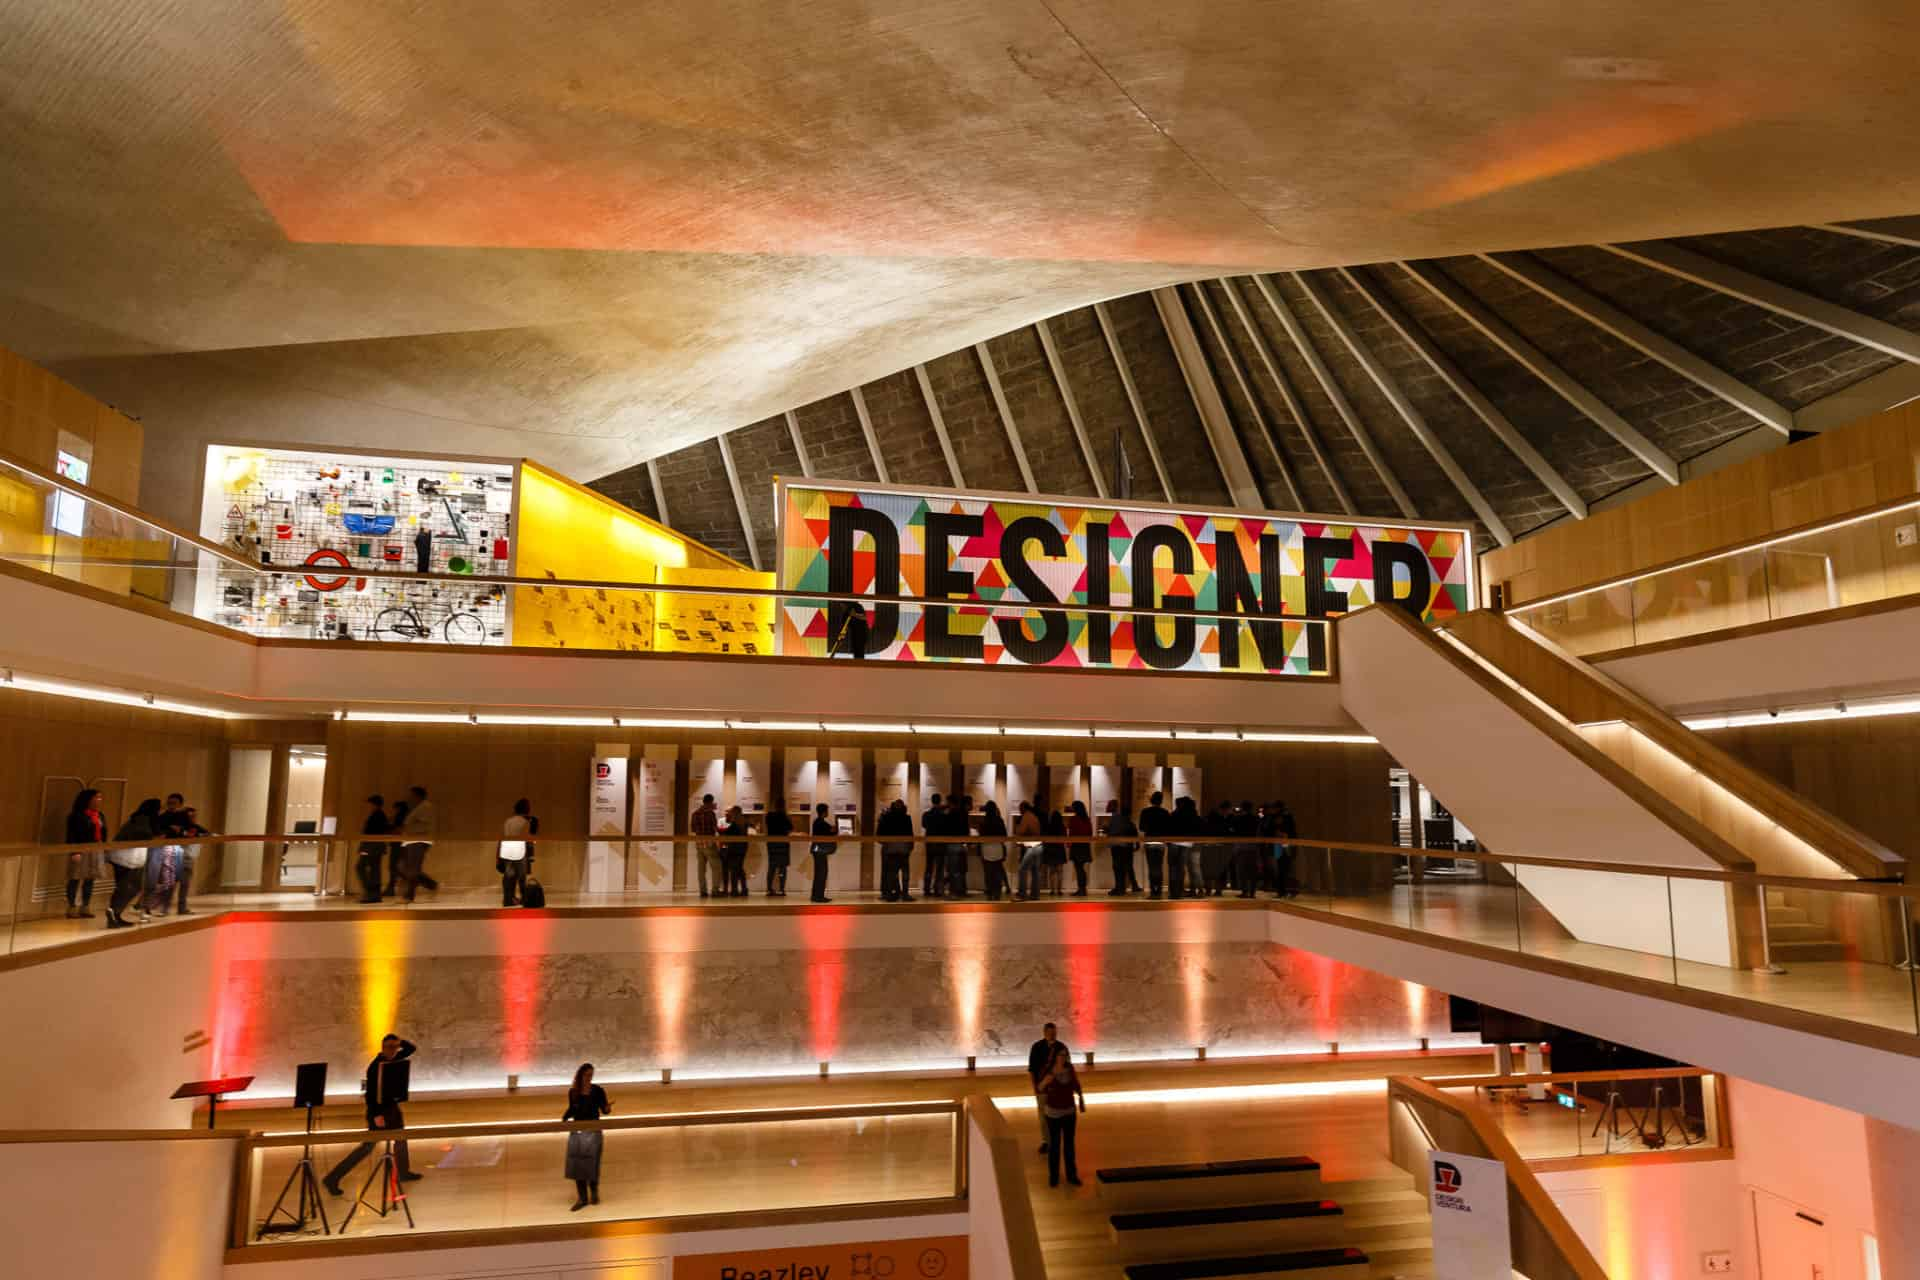 Design Museum, one of the bests Museums in London